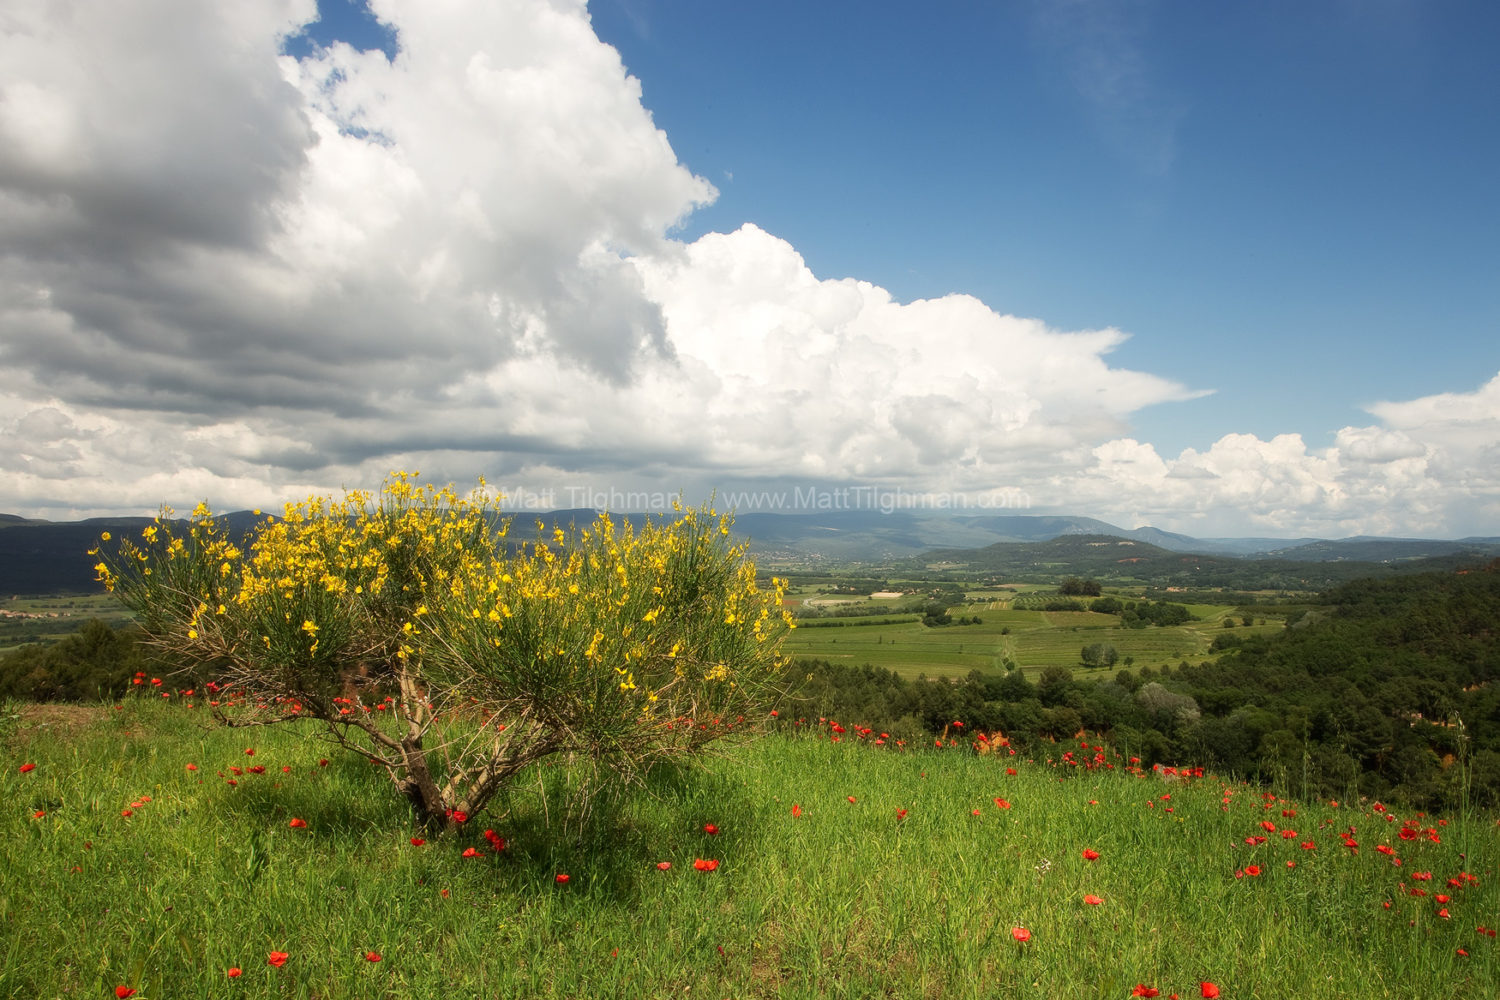 Fine art stock photograph of Provence in spring, with gentle rolling hillsides and vibrant wildflowers. Taken from atop the town of Roussillon, France.